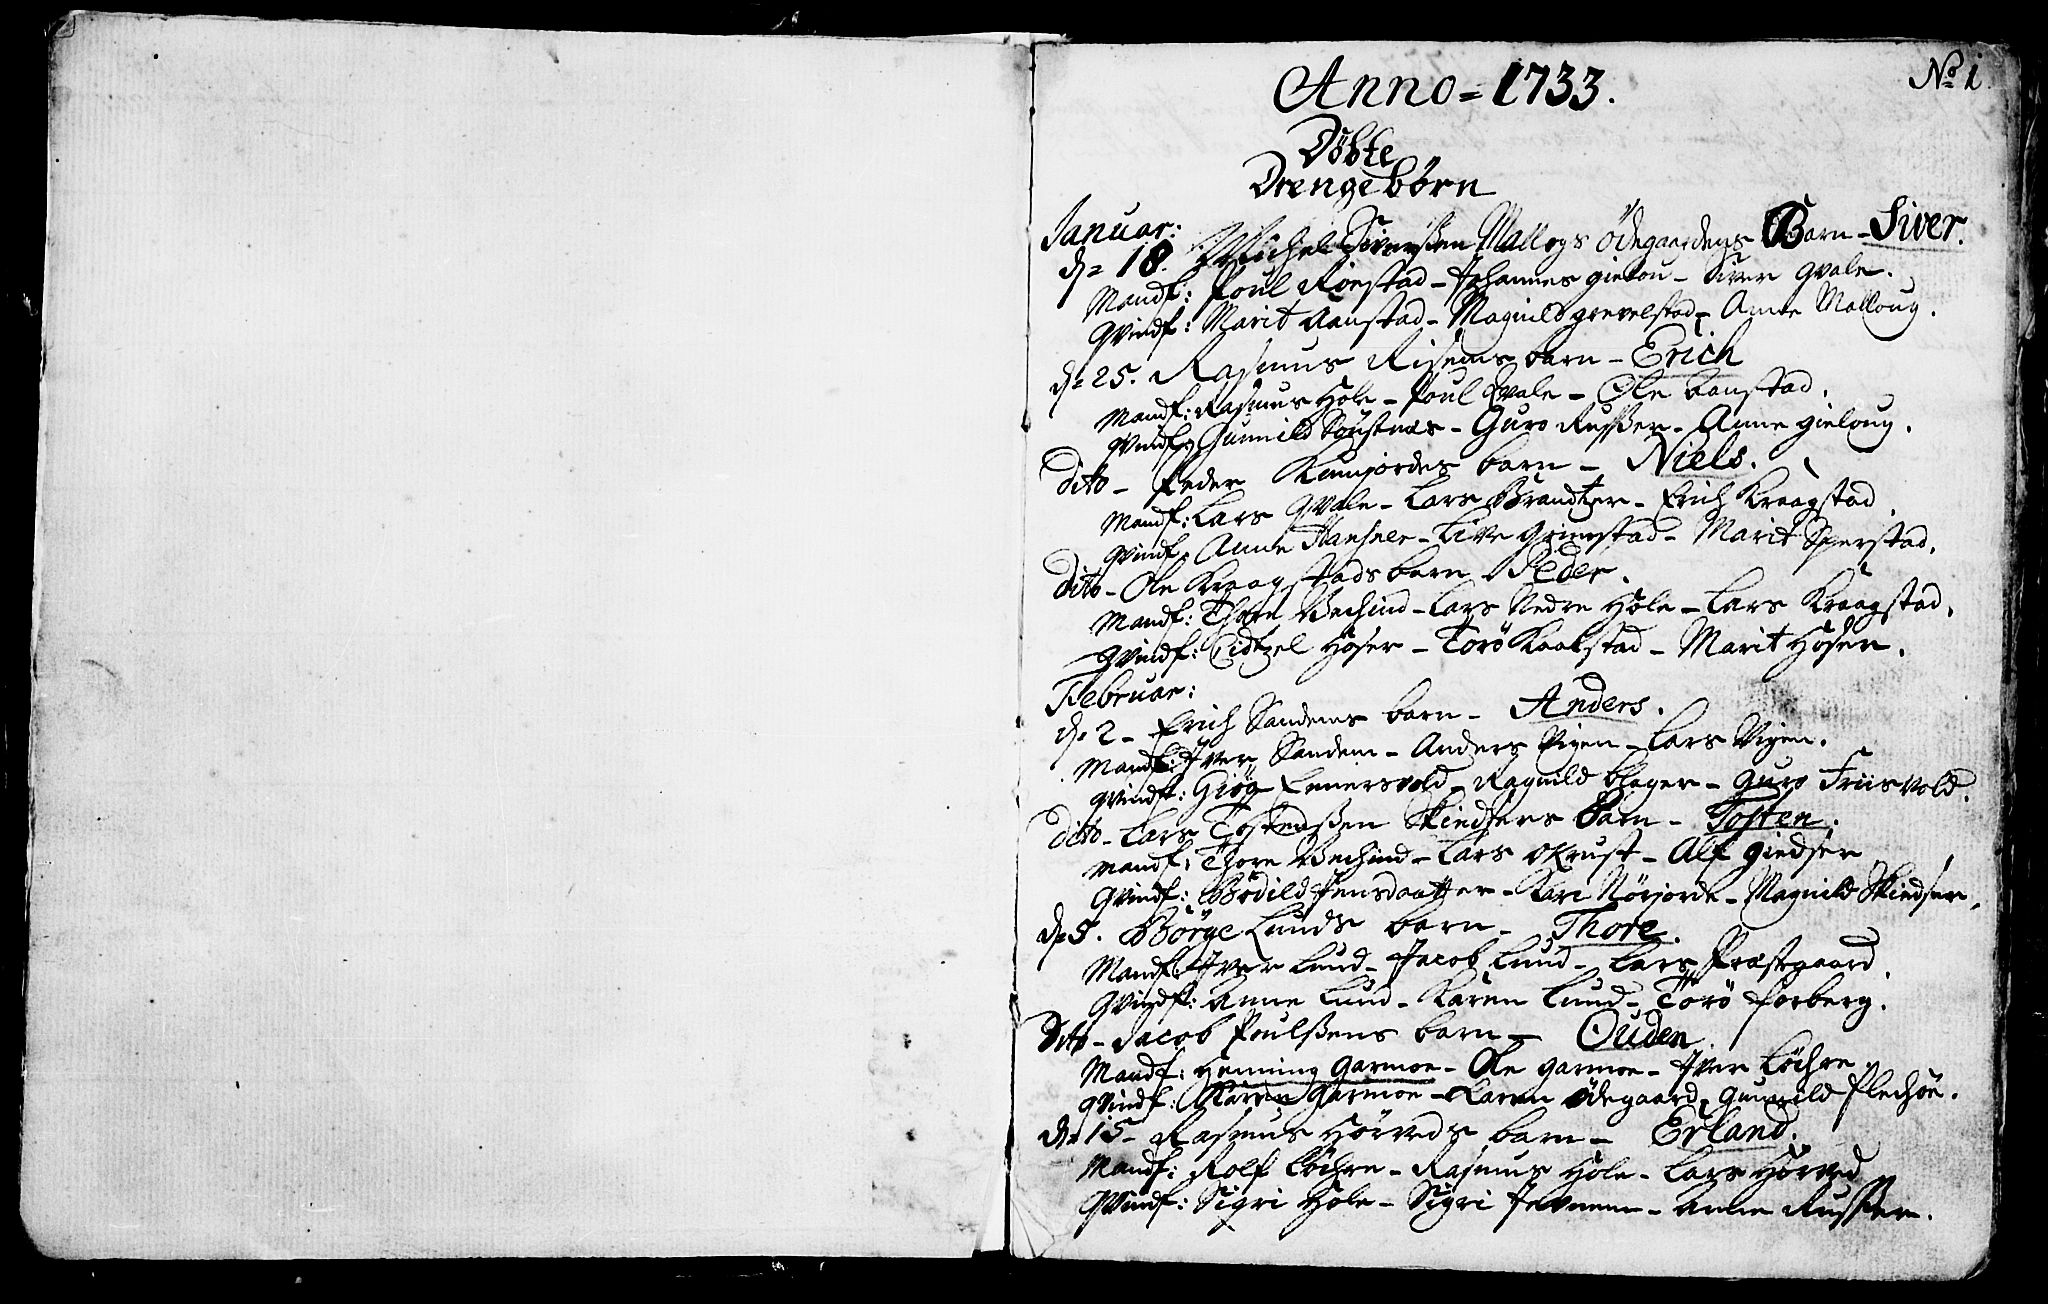 SAH, Lom prestekontor, K/L0001: Parish register (official) no. 1, 1733-1748, p. 1